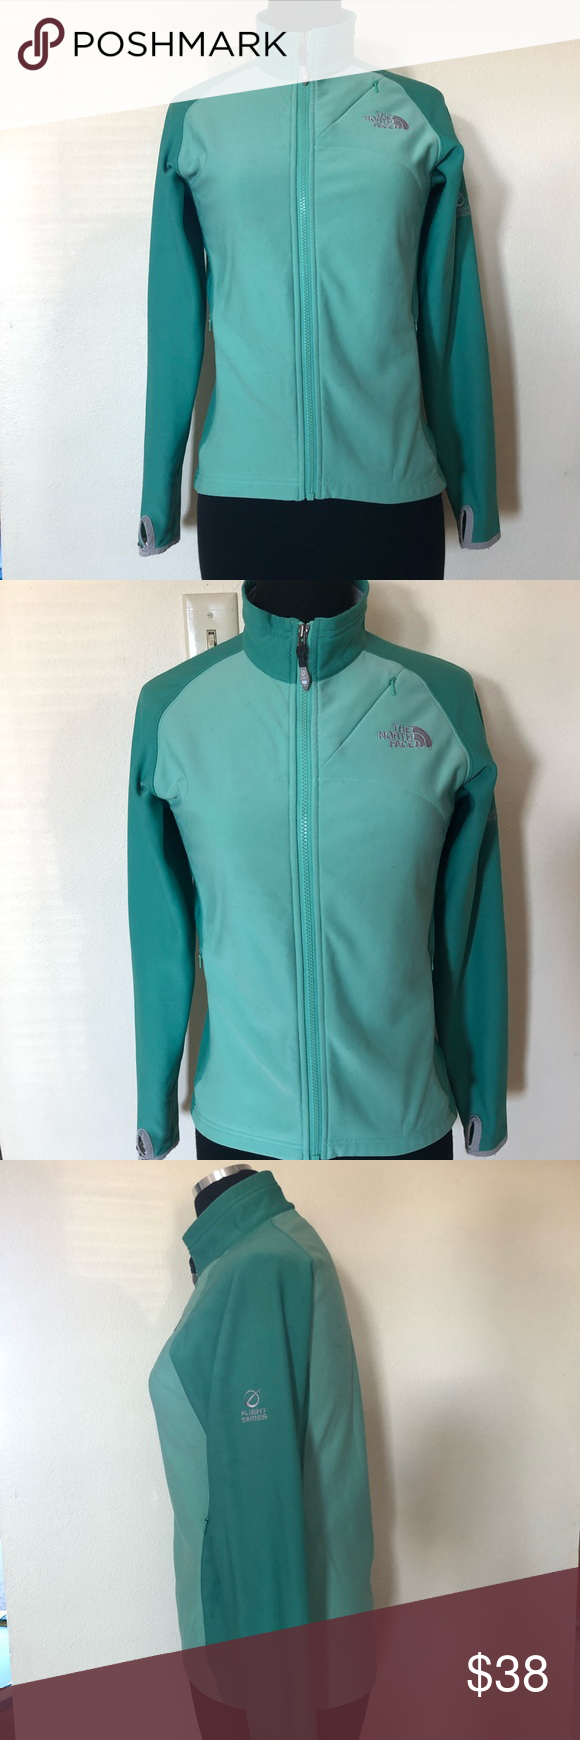 0aa44344f THE NORTH FACE FLIGHT SERIES TKA STRETCH JACKET S Pre owned THE ...